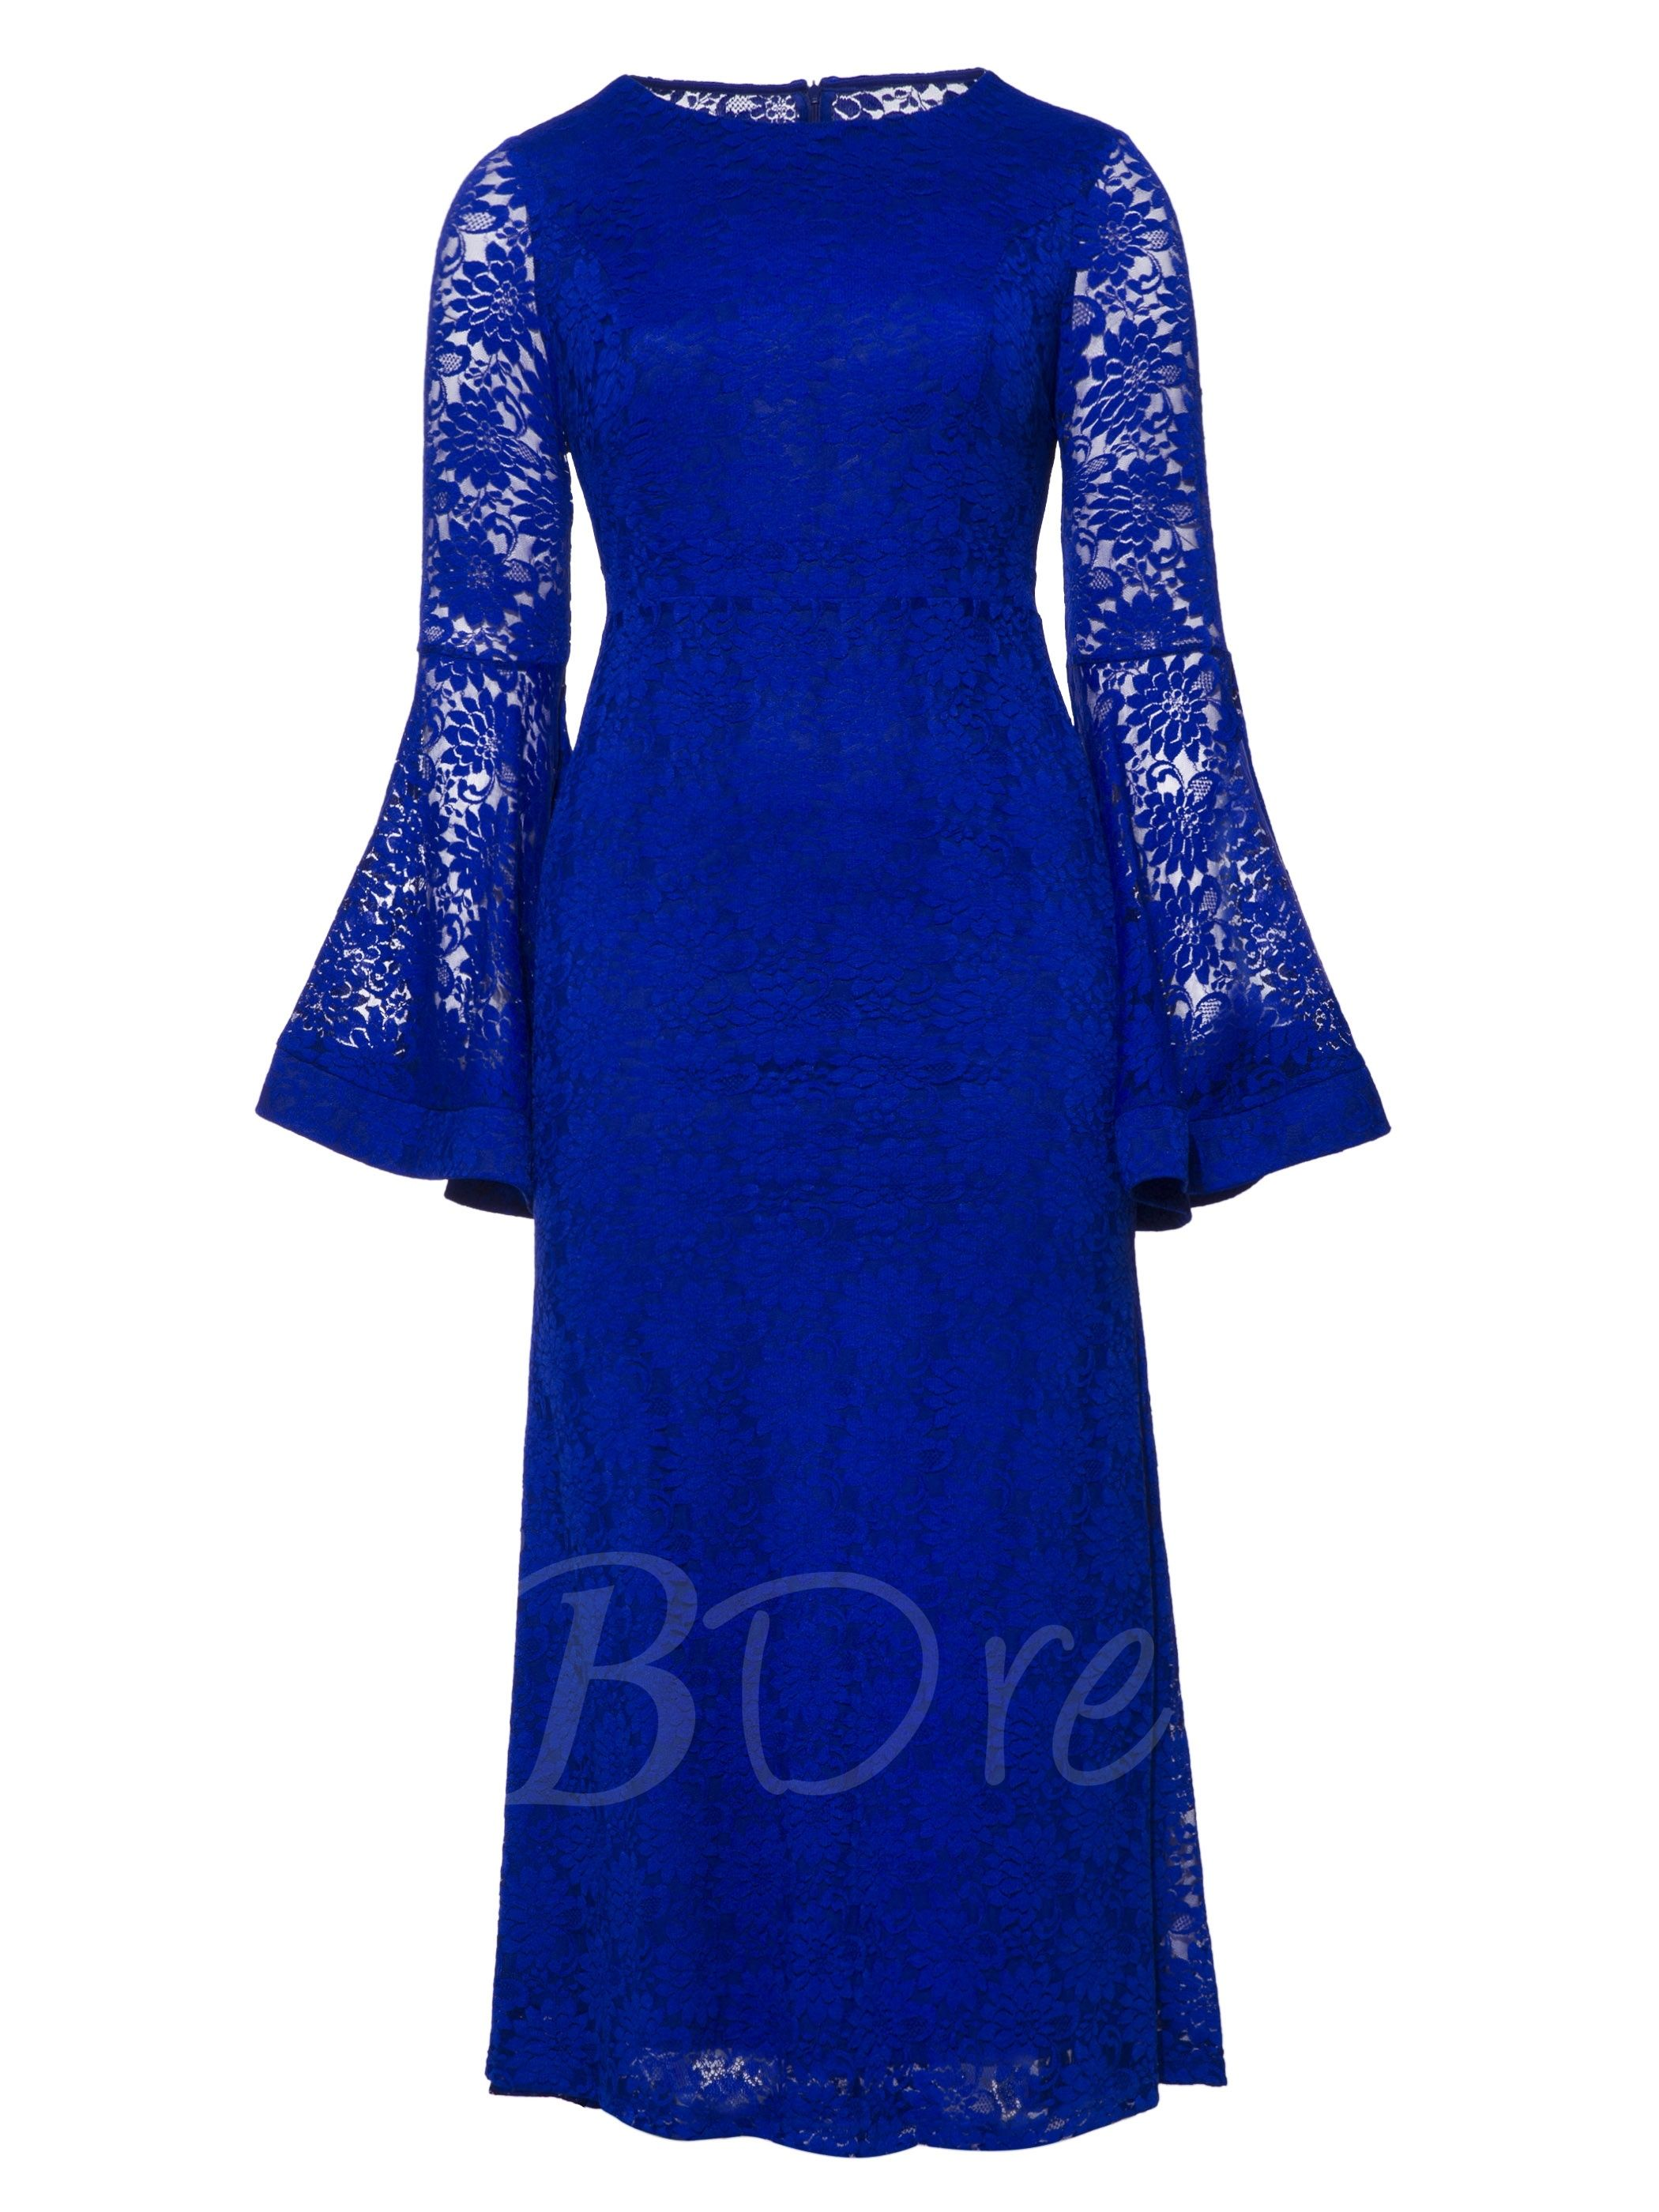 Royal Blue Bell Sleeve Plus Size Womenus Lace Dress in